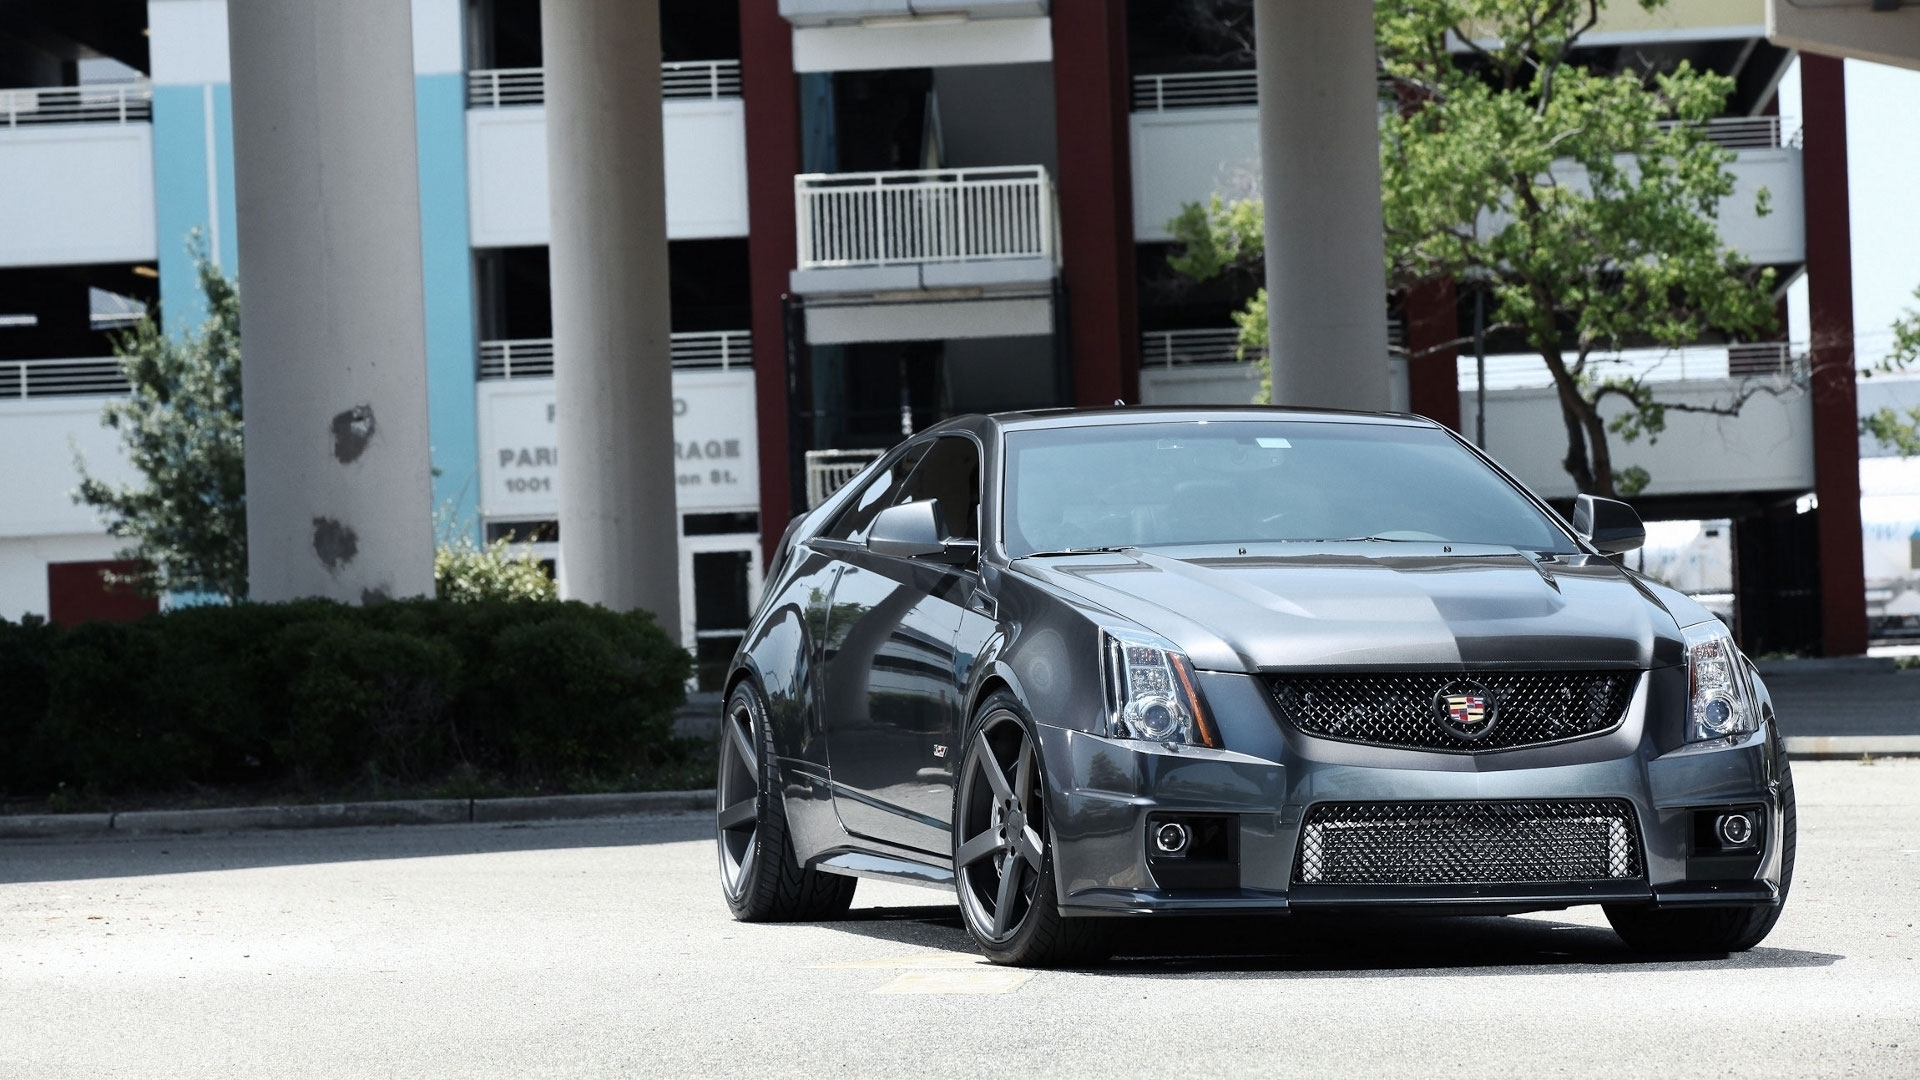 Cadillac Cts V Hd Wallpaper Background Image 1920x1080 Id